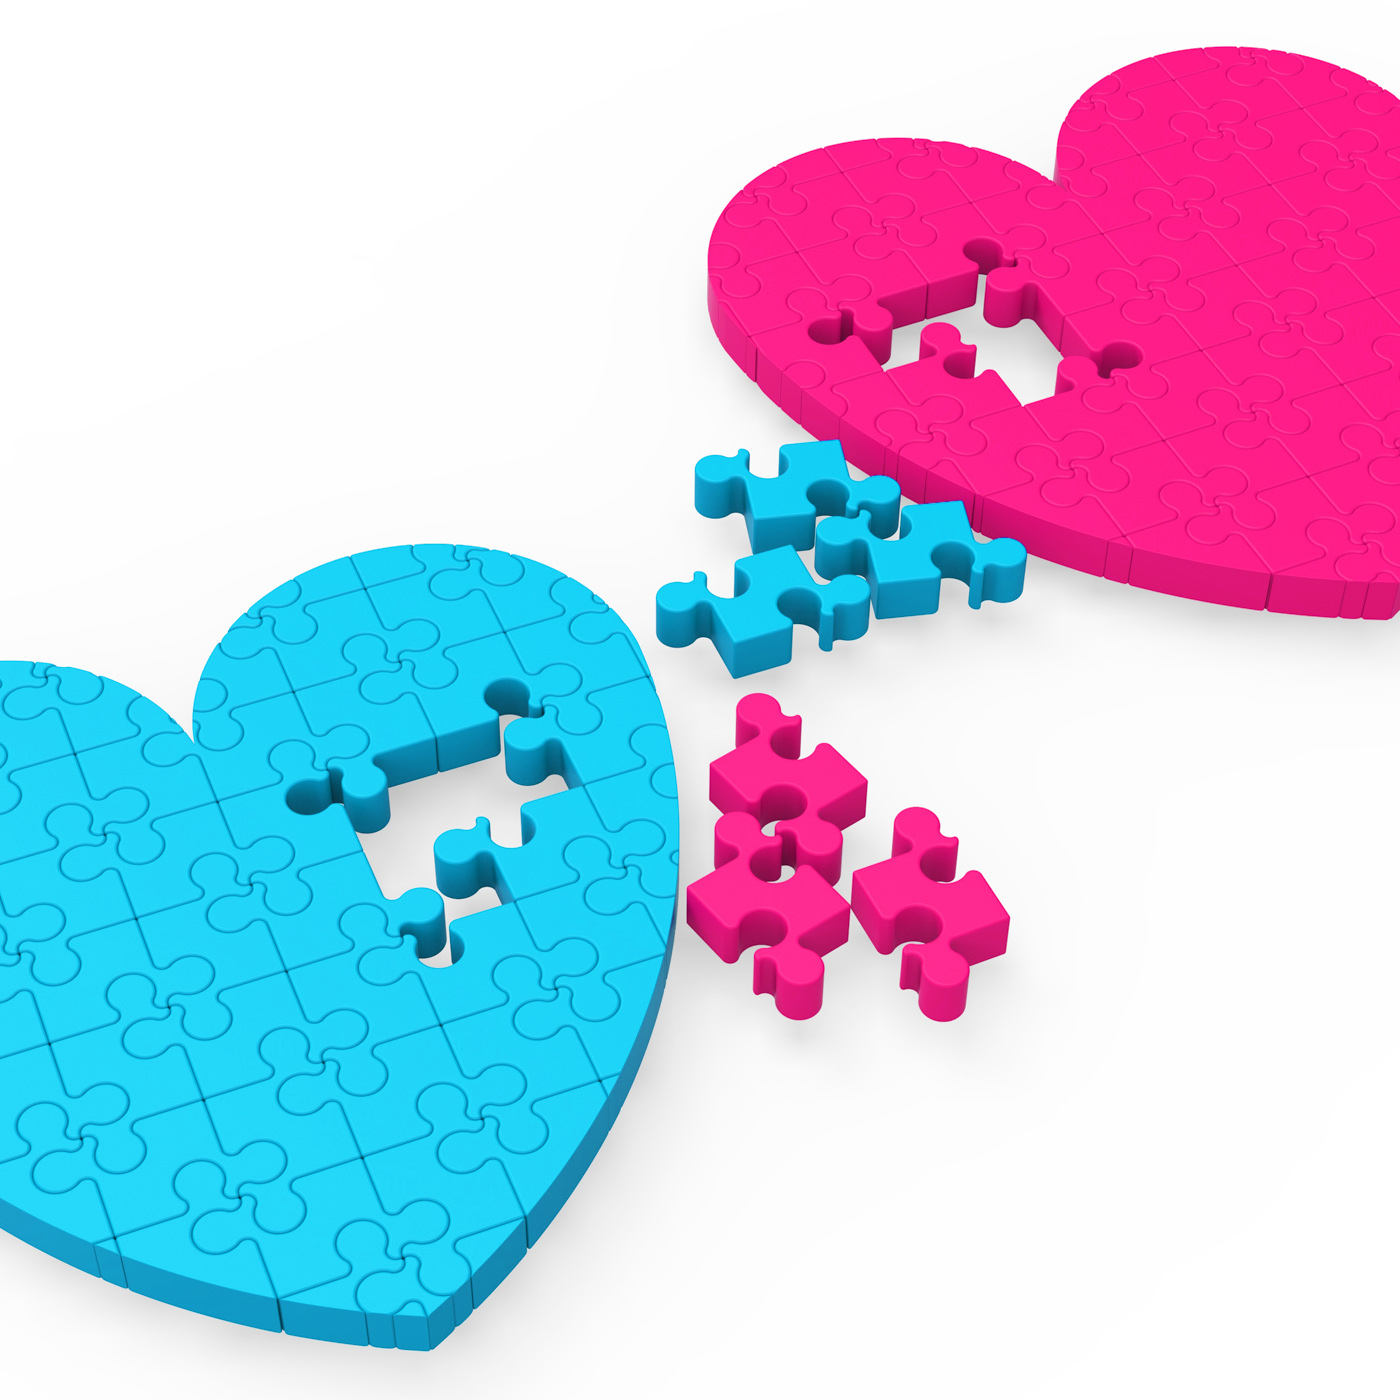 Two 3D Hearts Showing Romantic Gestures, Pieces, Turquoise, Threedimensional, Sweetheart, HQ Photo